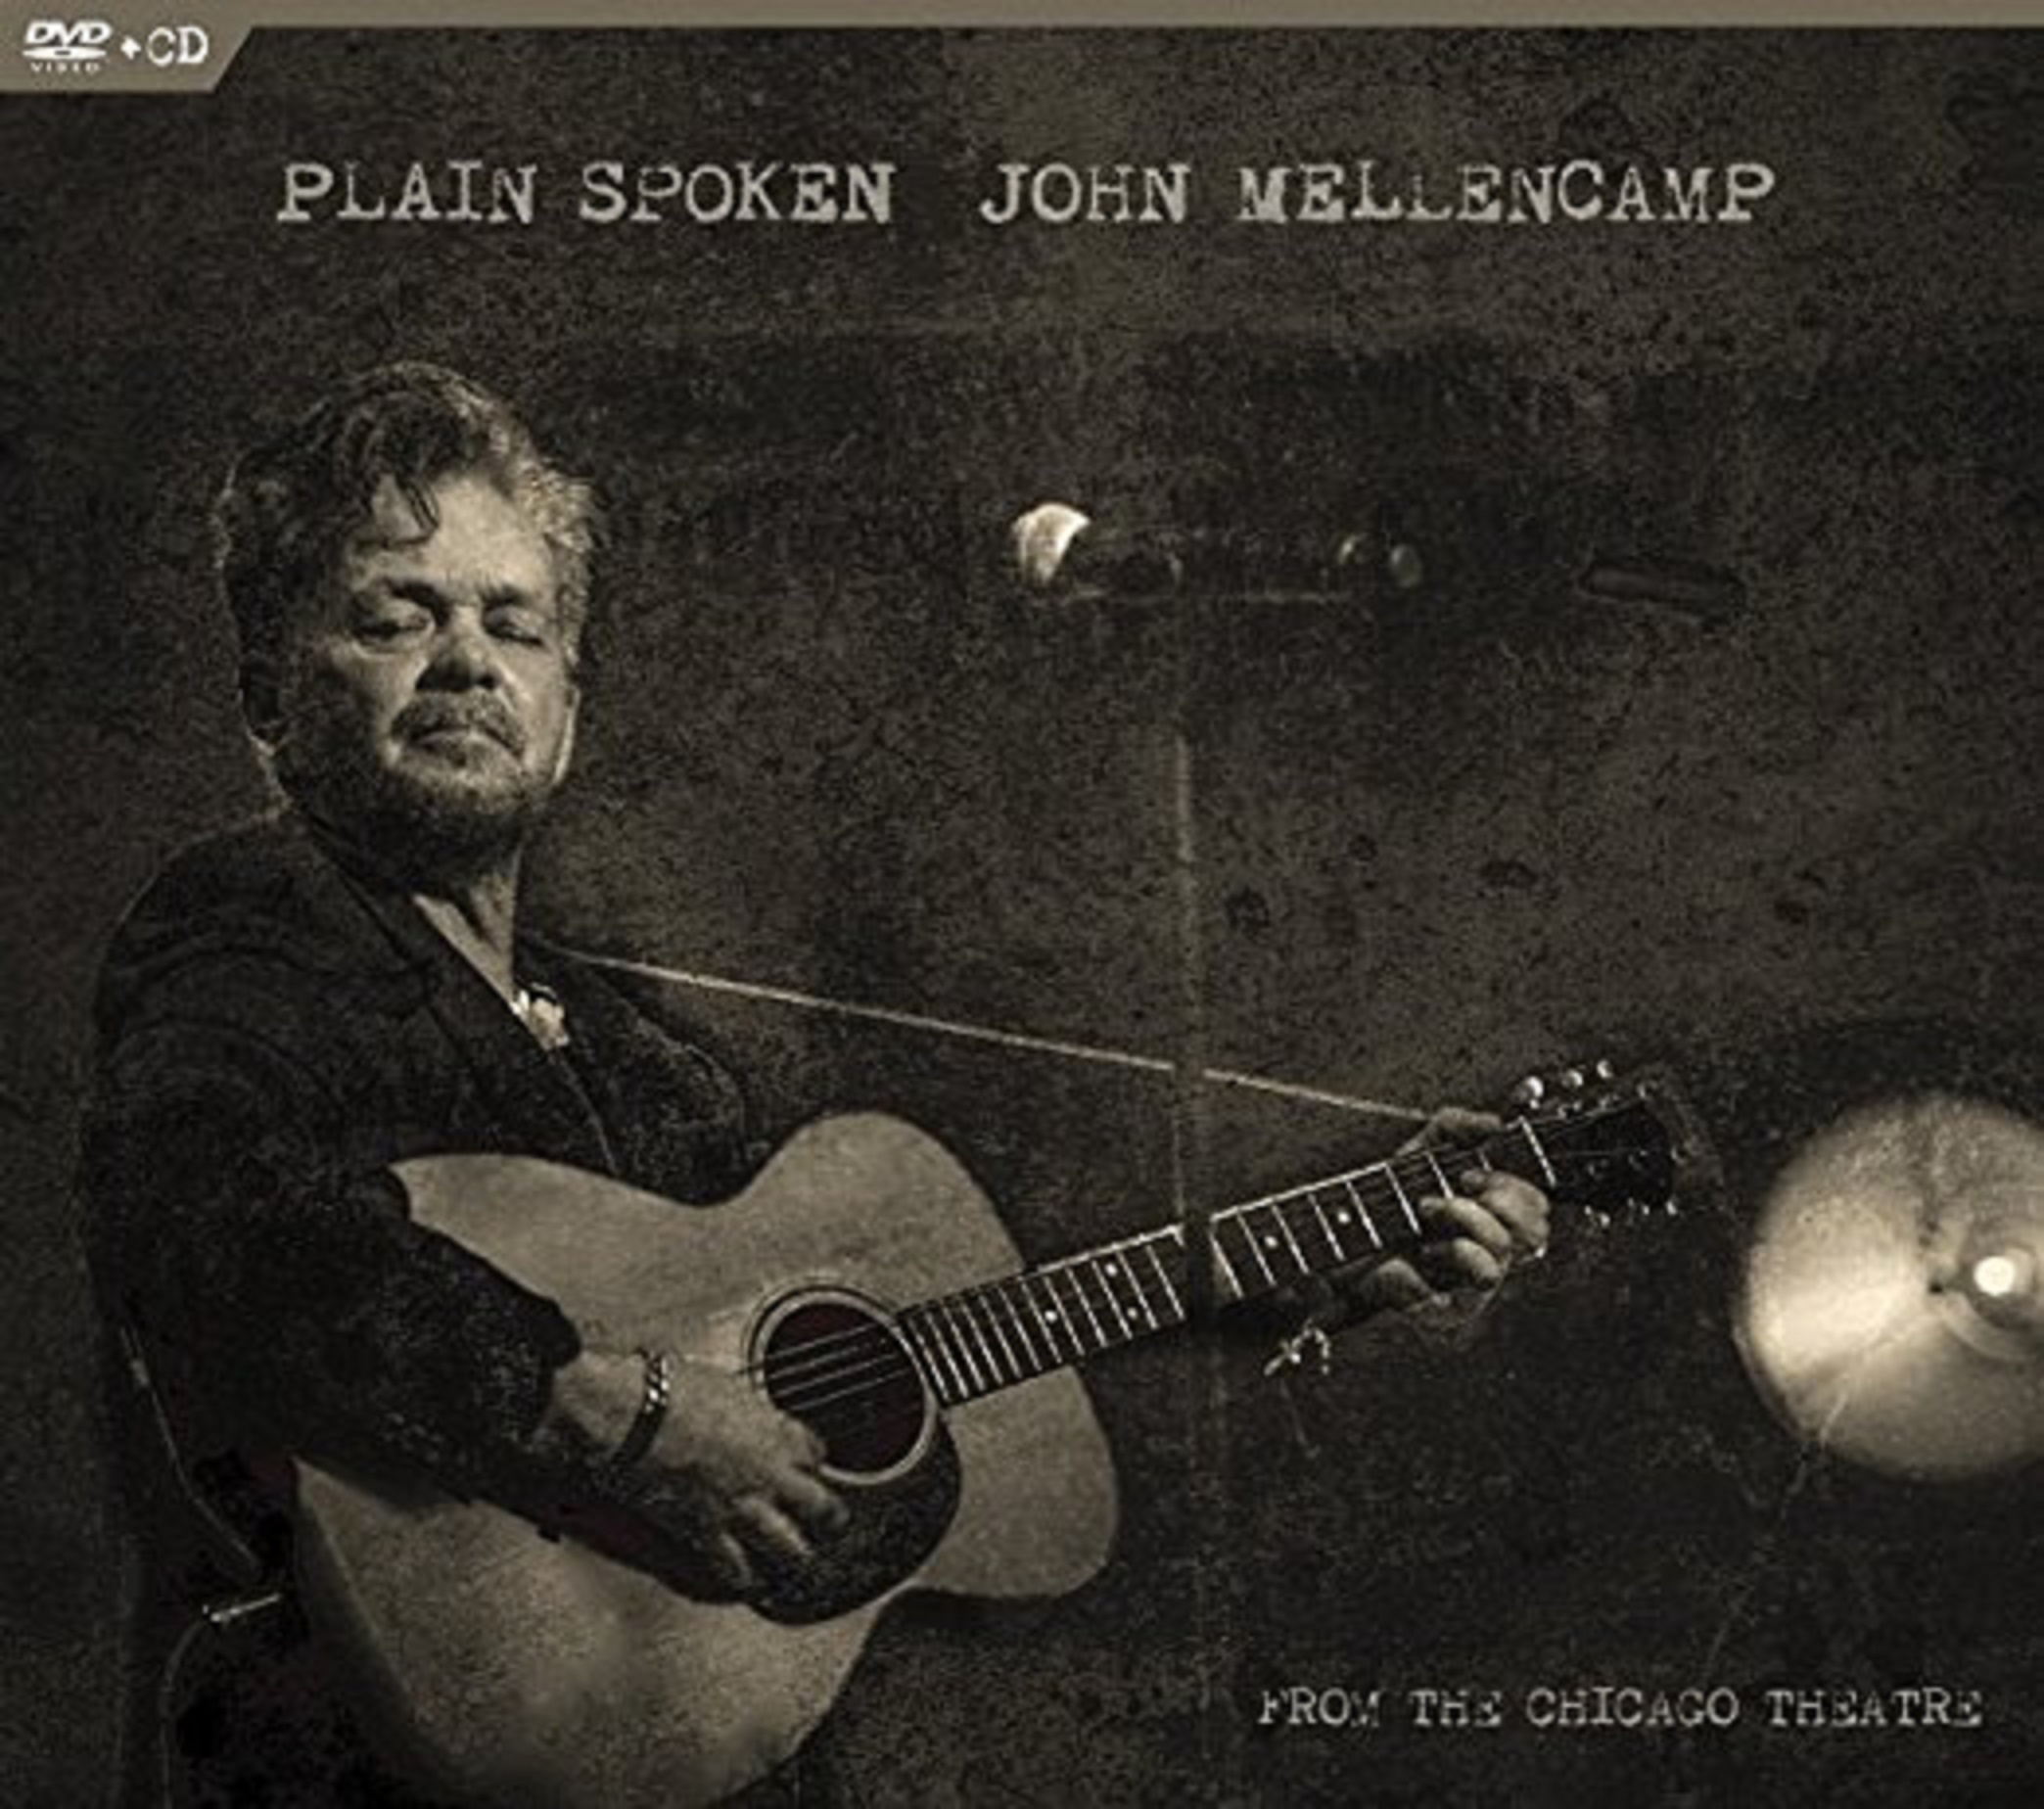 JOHN MELLENCAMP PLAIN SPOKEN: FROM THE CHICAGO THEATRE